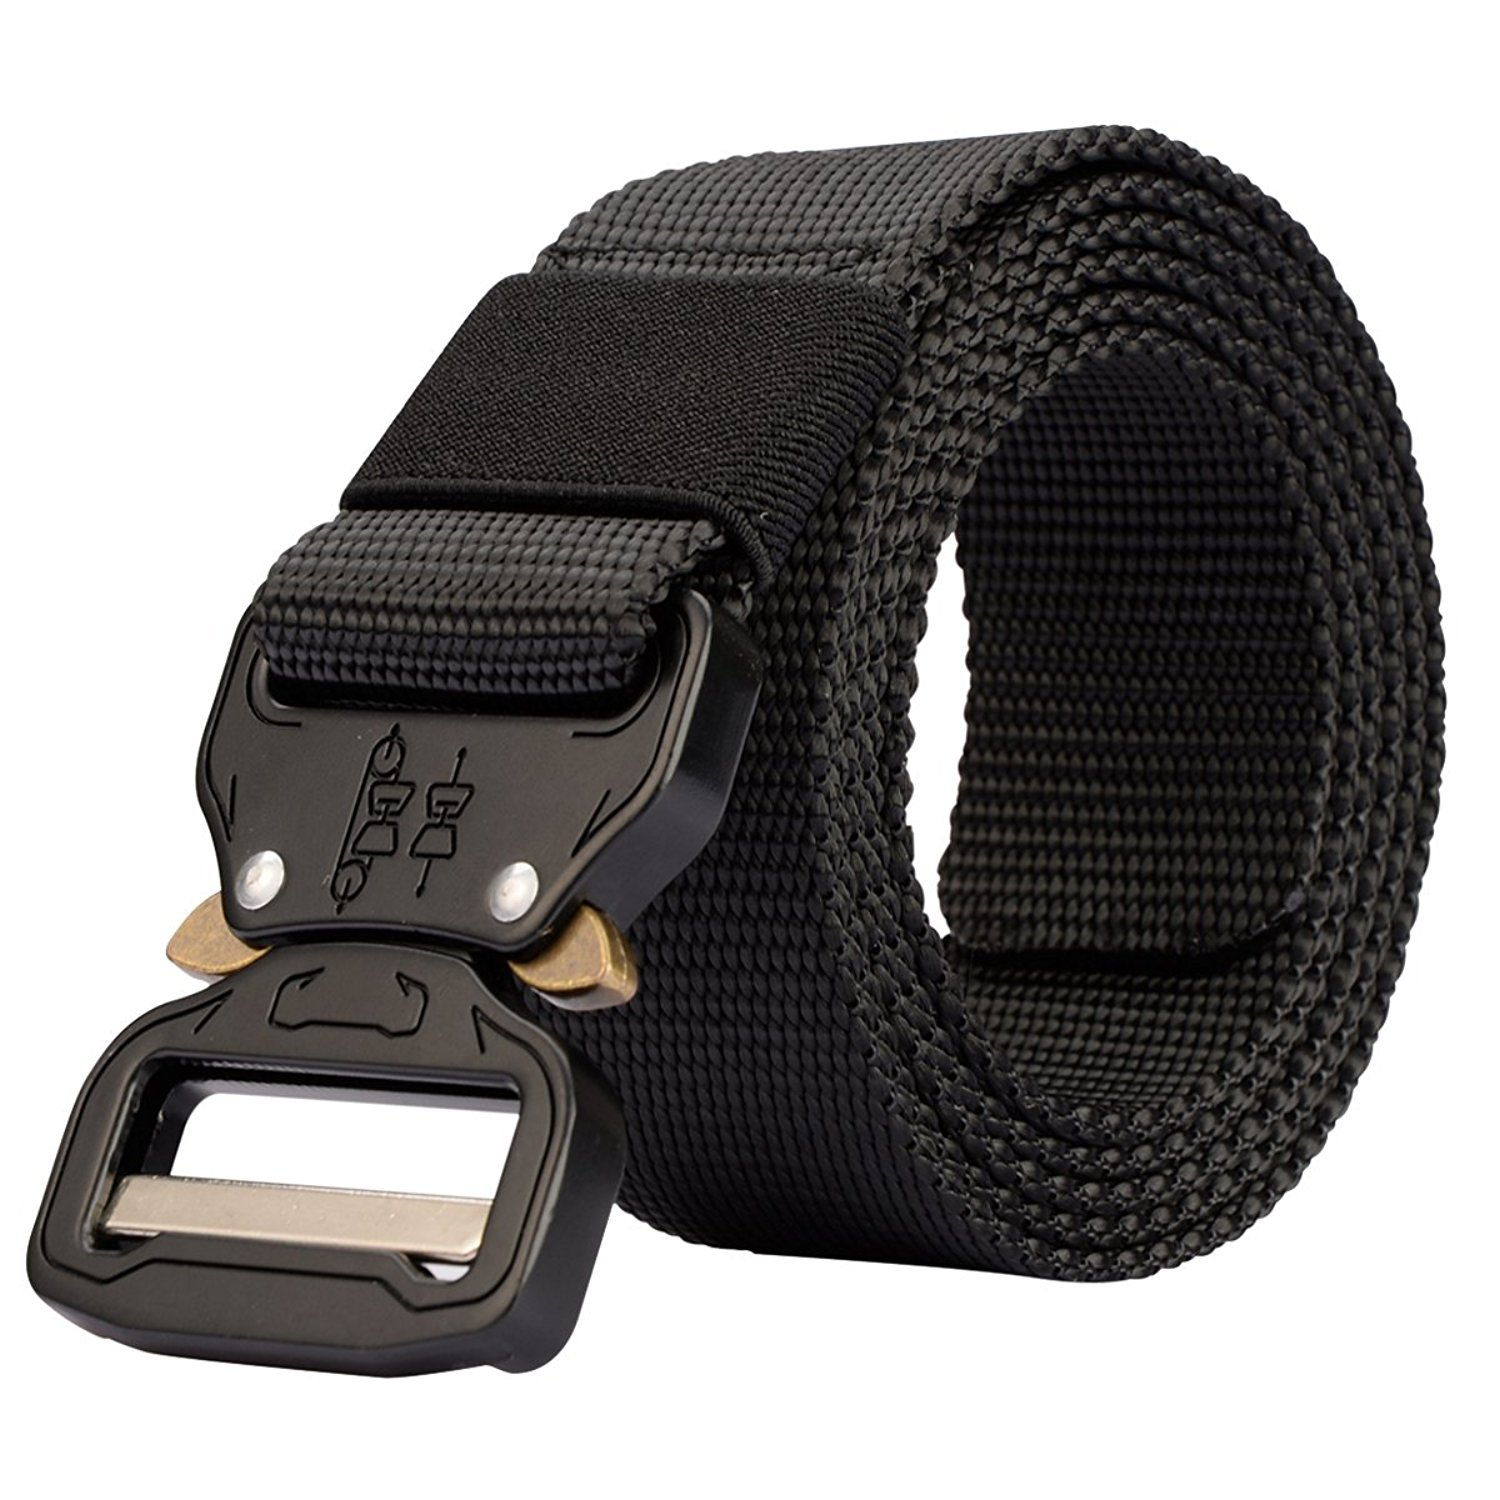 Thickyuan Men's Tactical Belt Heavy Duty Webbing Belt Adjustable Military Style Nylon Belts with Metal Buckle|MOLLE Tactical CQB Rigger|multiple choices